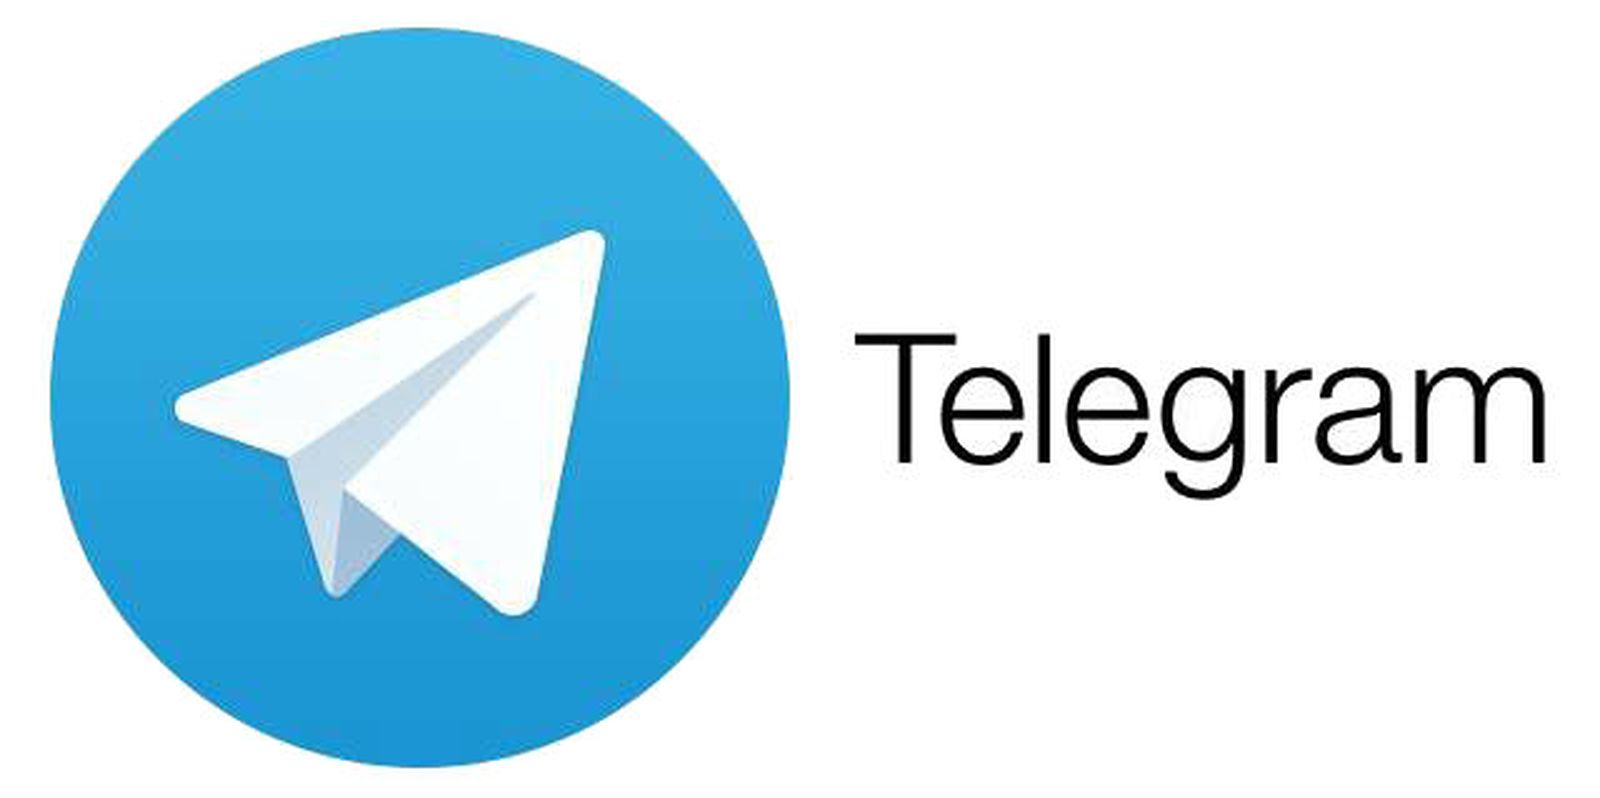 Telegram app user